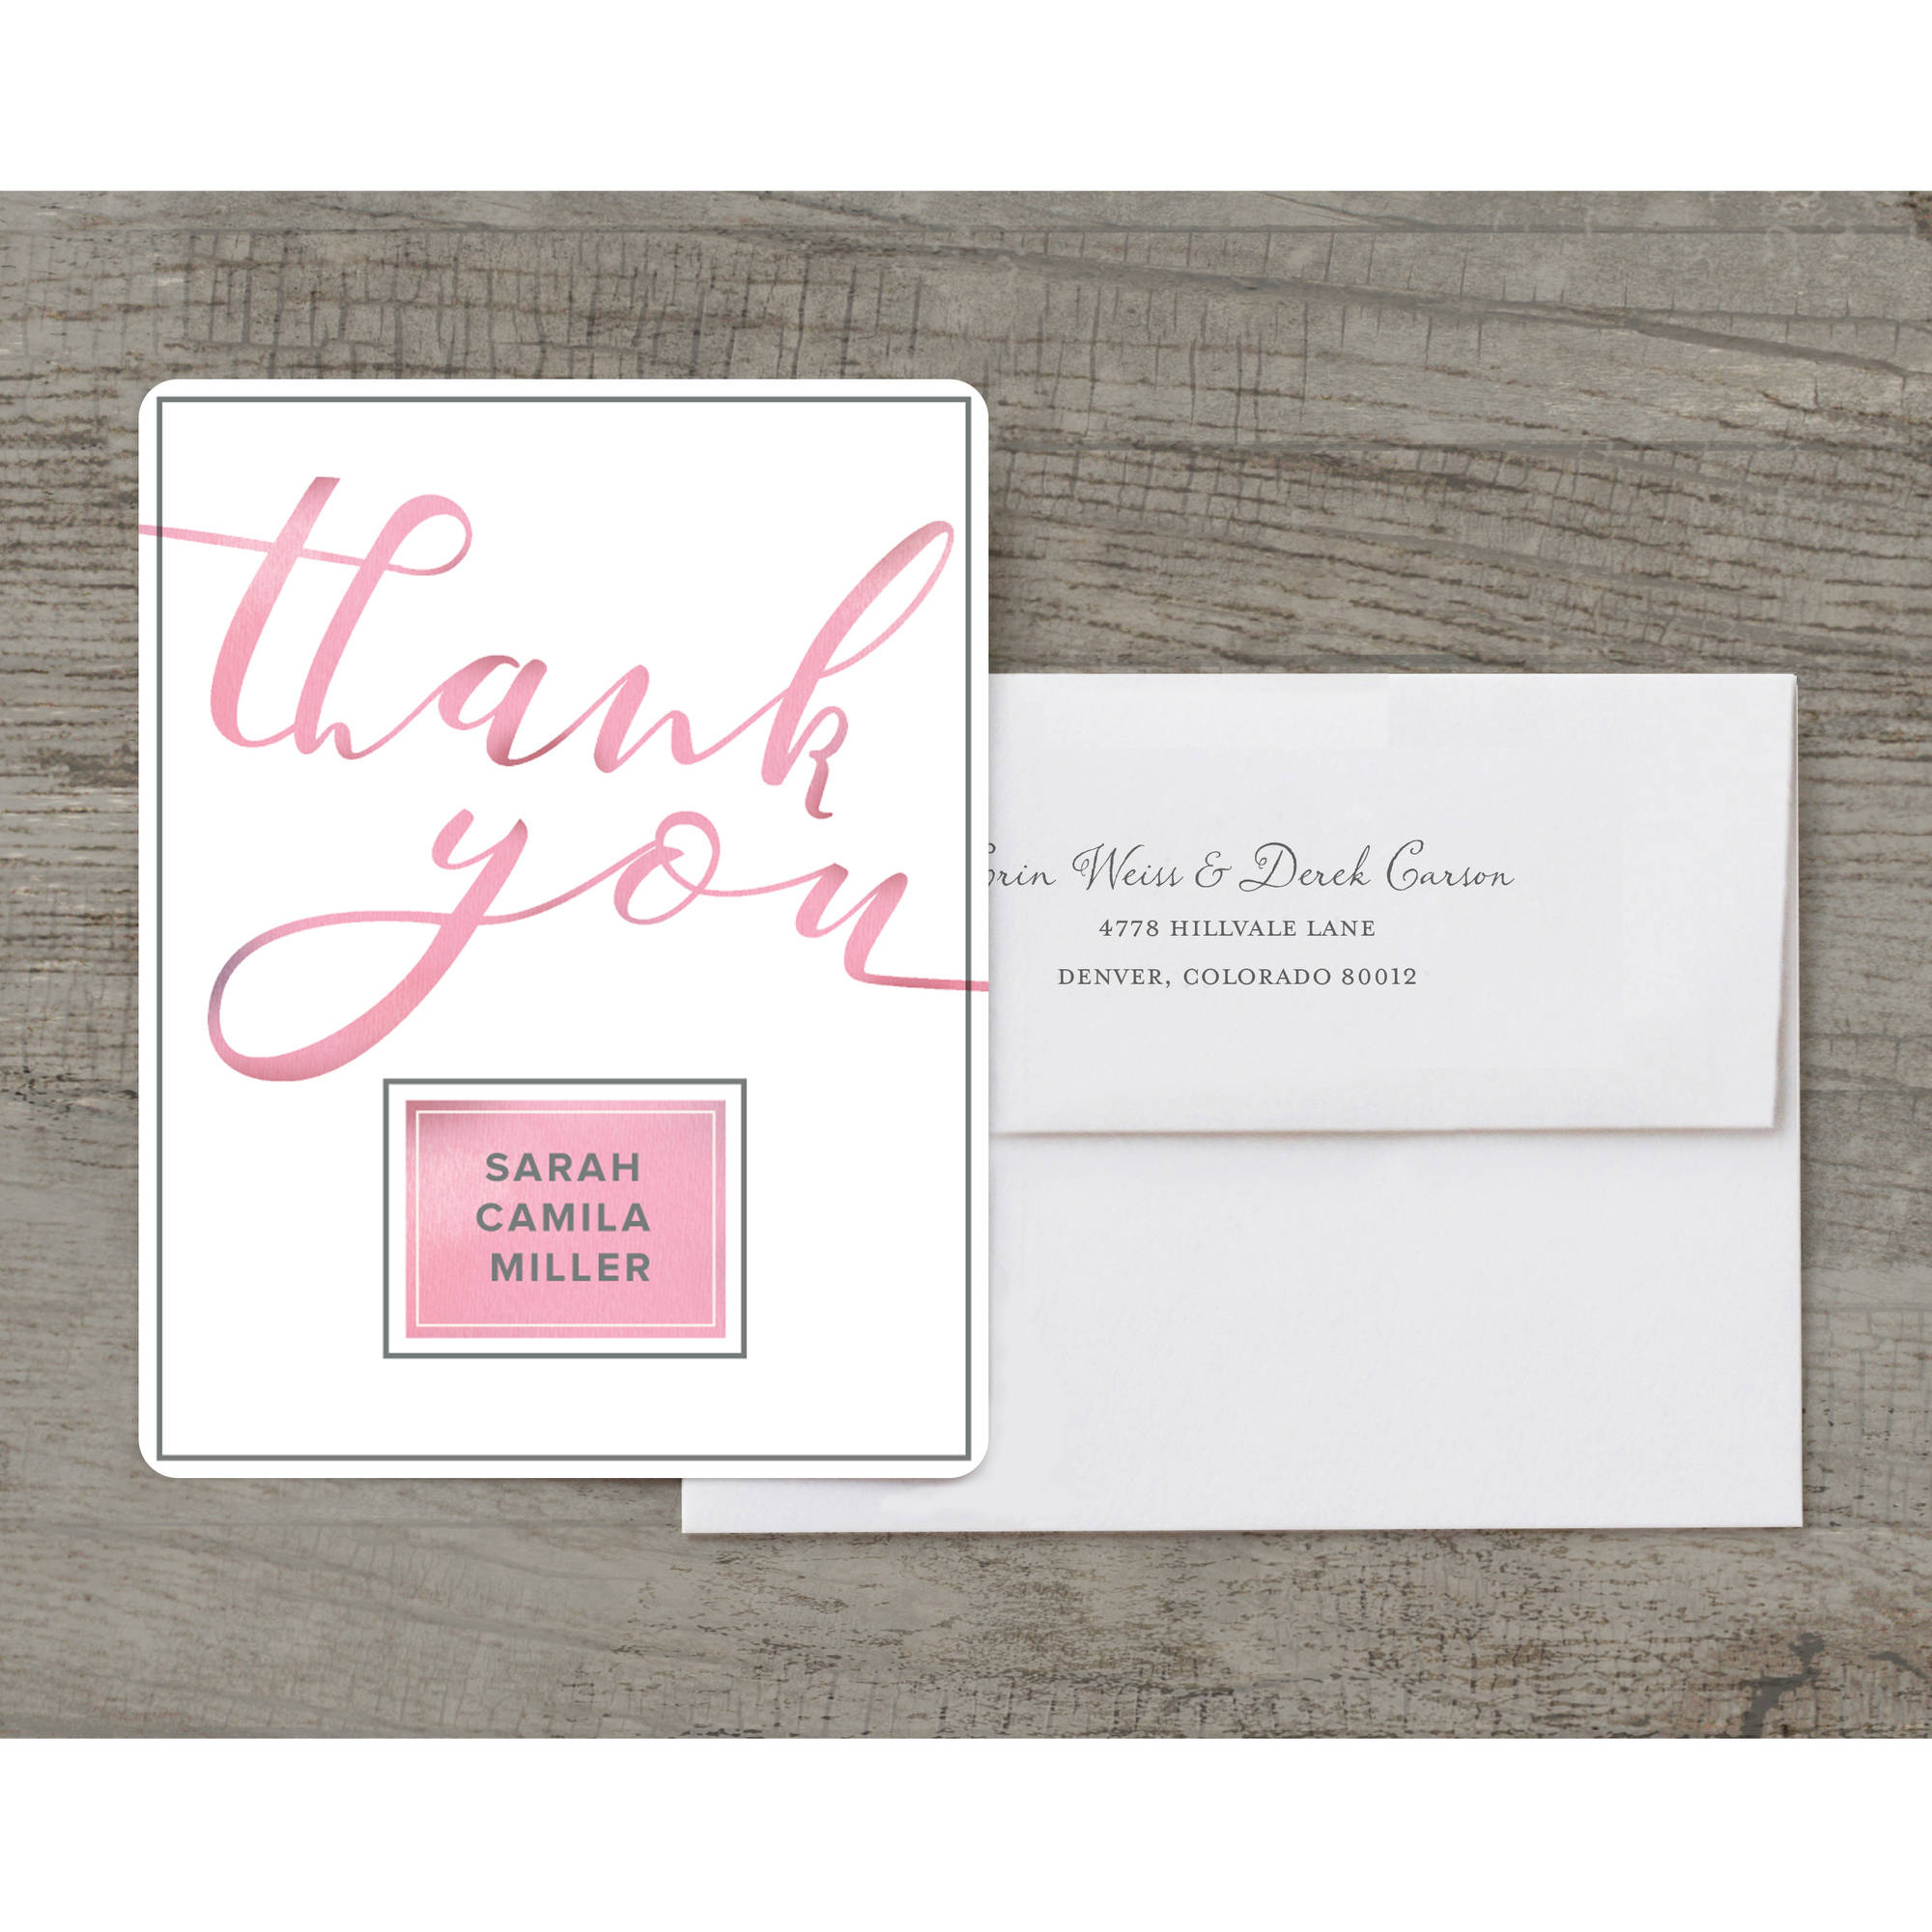 Graceful Script Deluxe Thank You Card